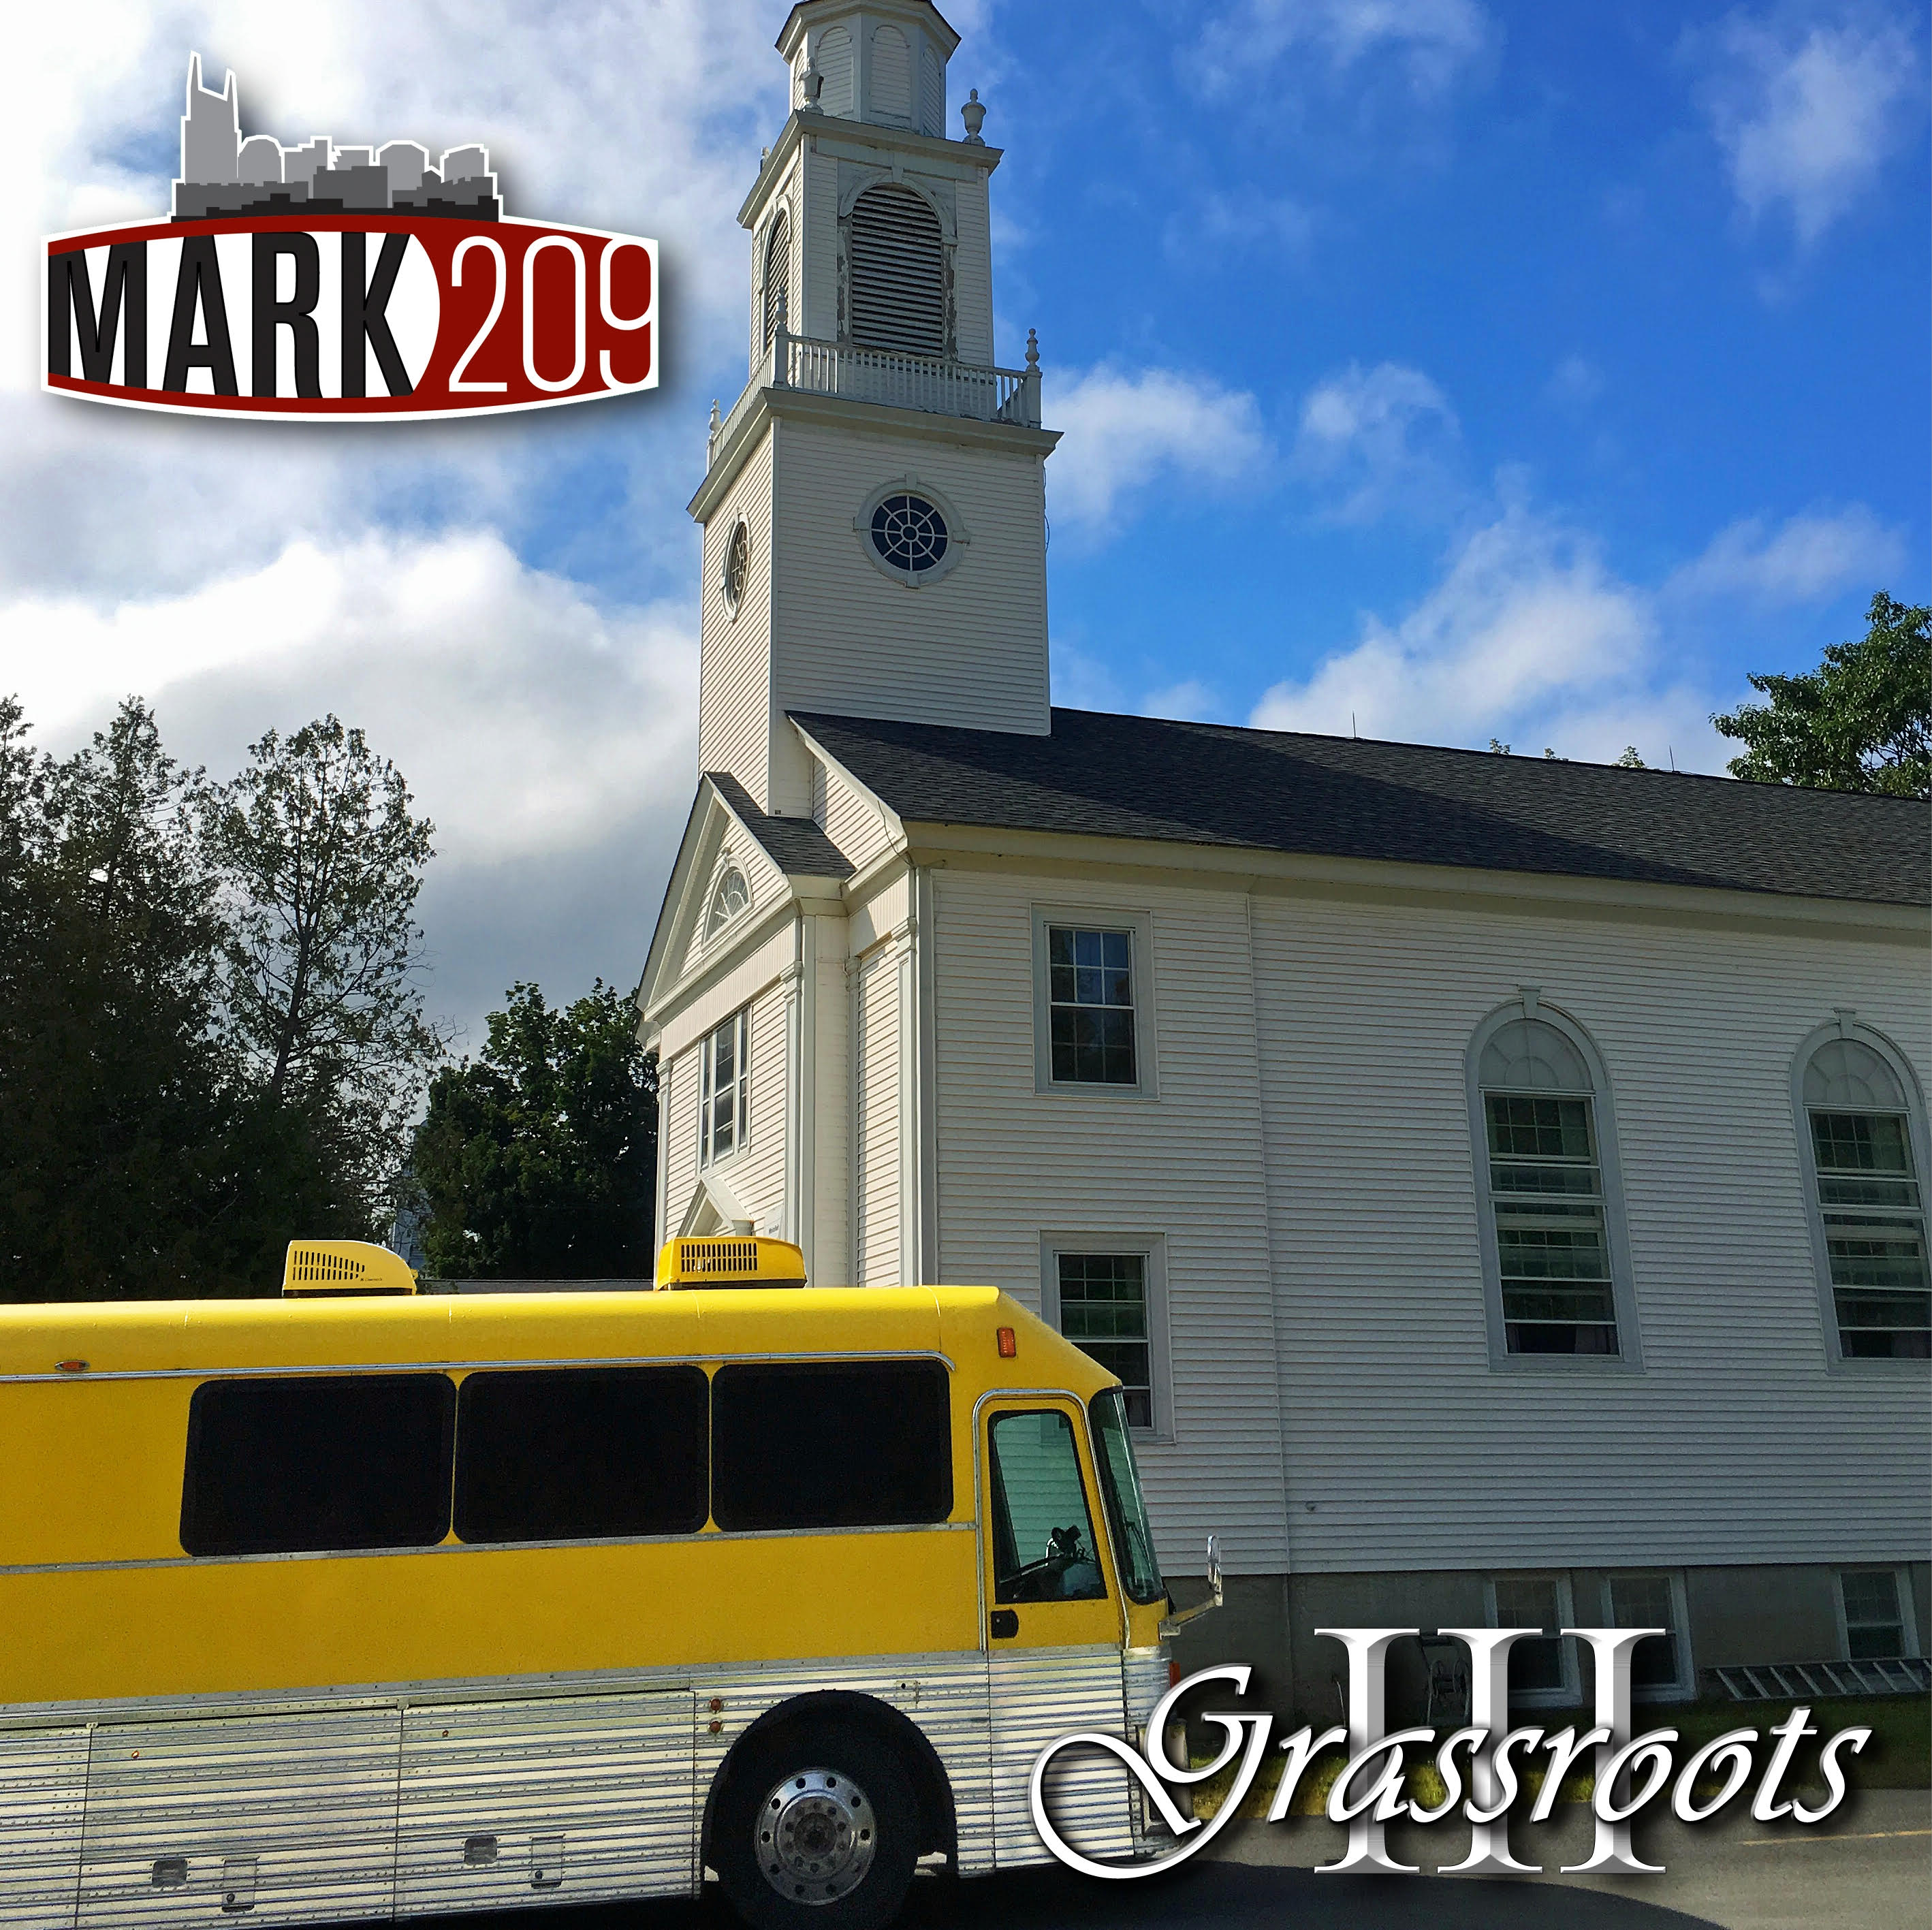 MARK209 announces release of new project Grassroots III